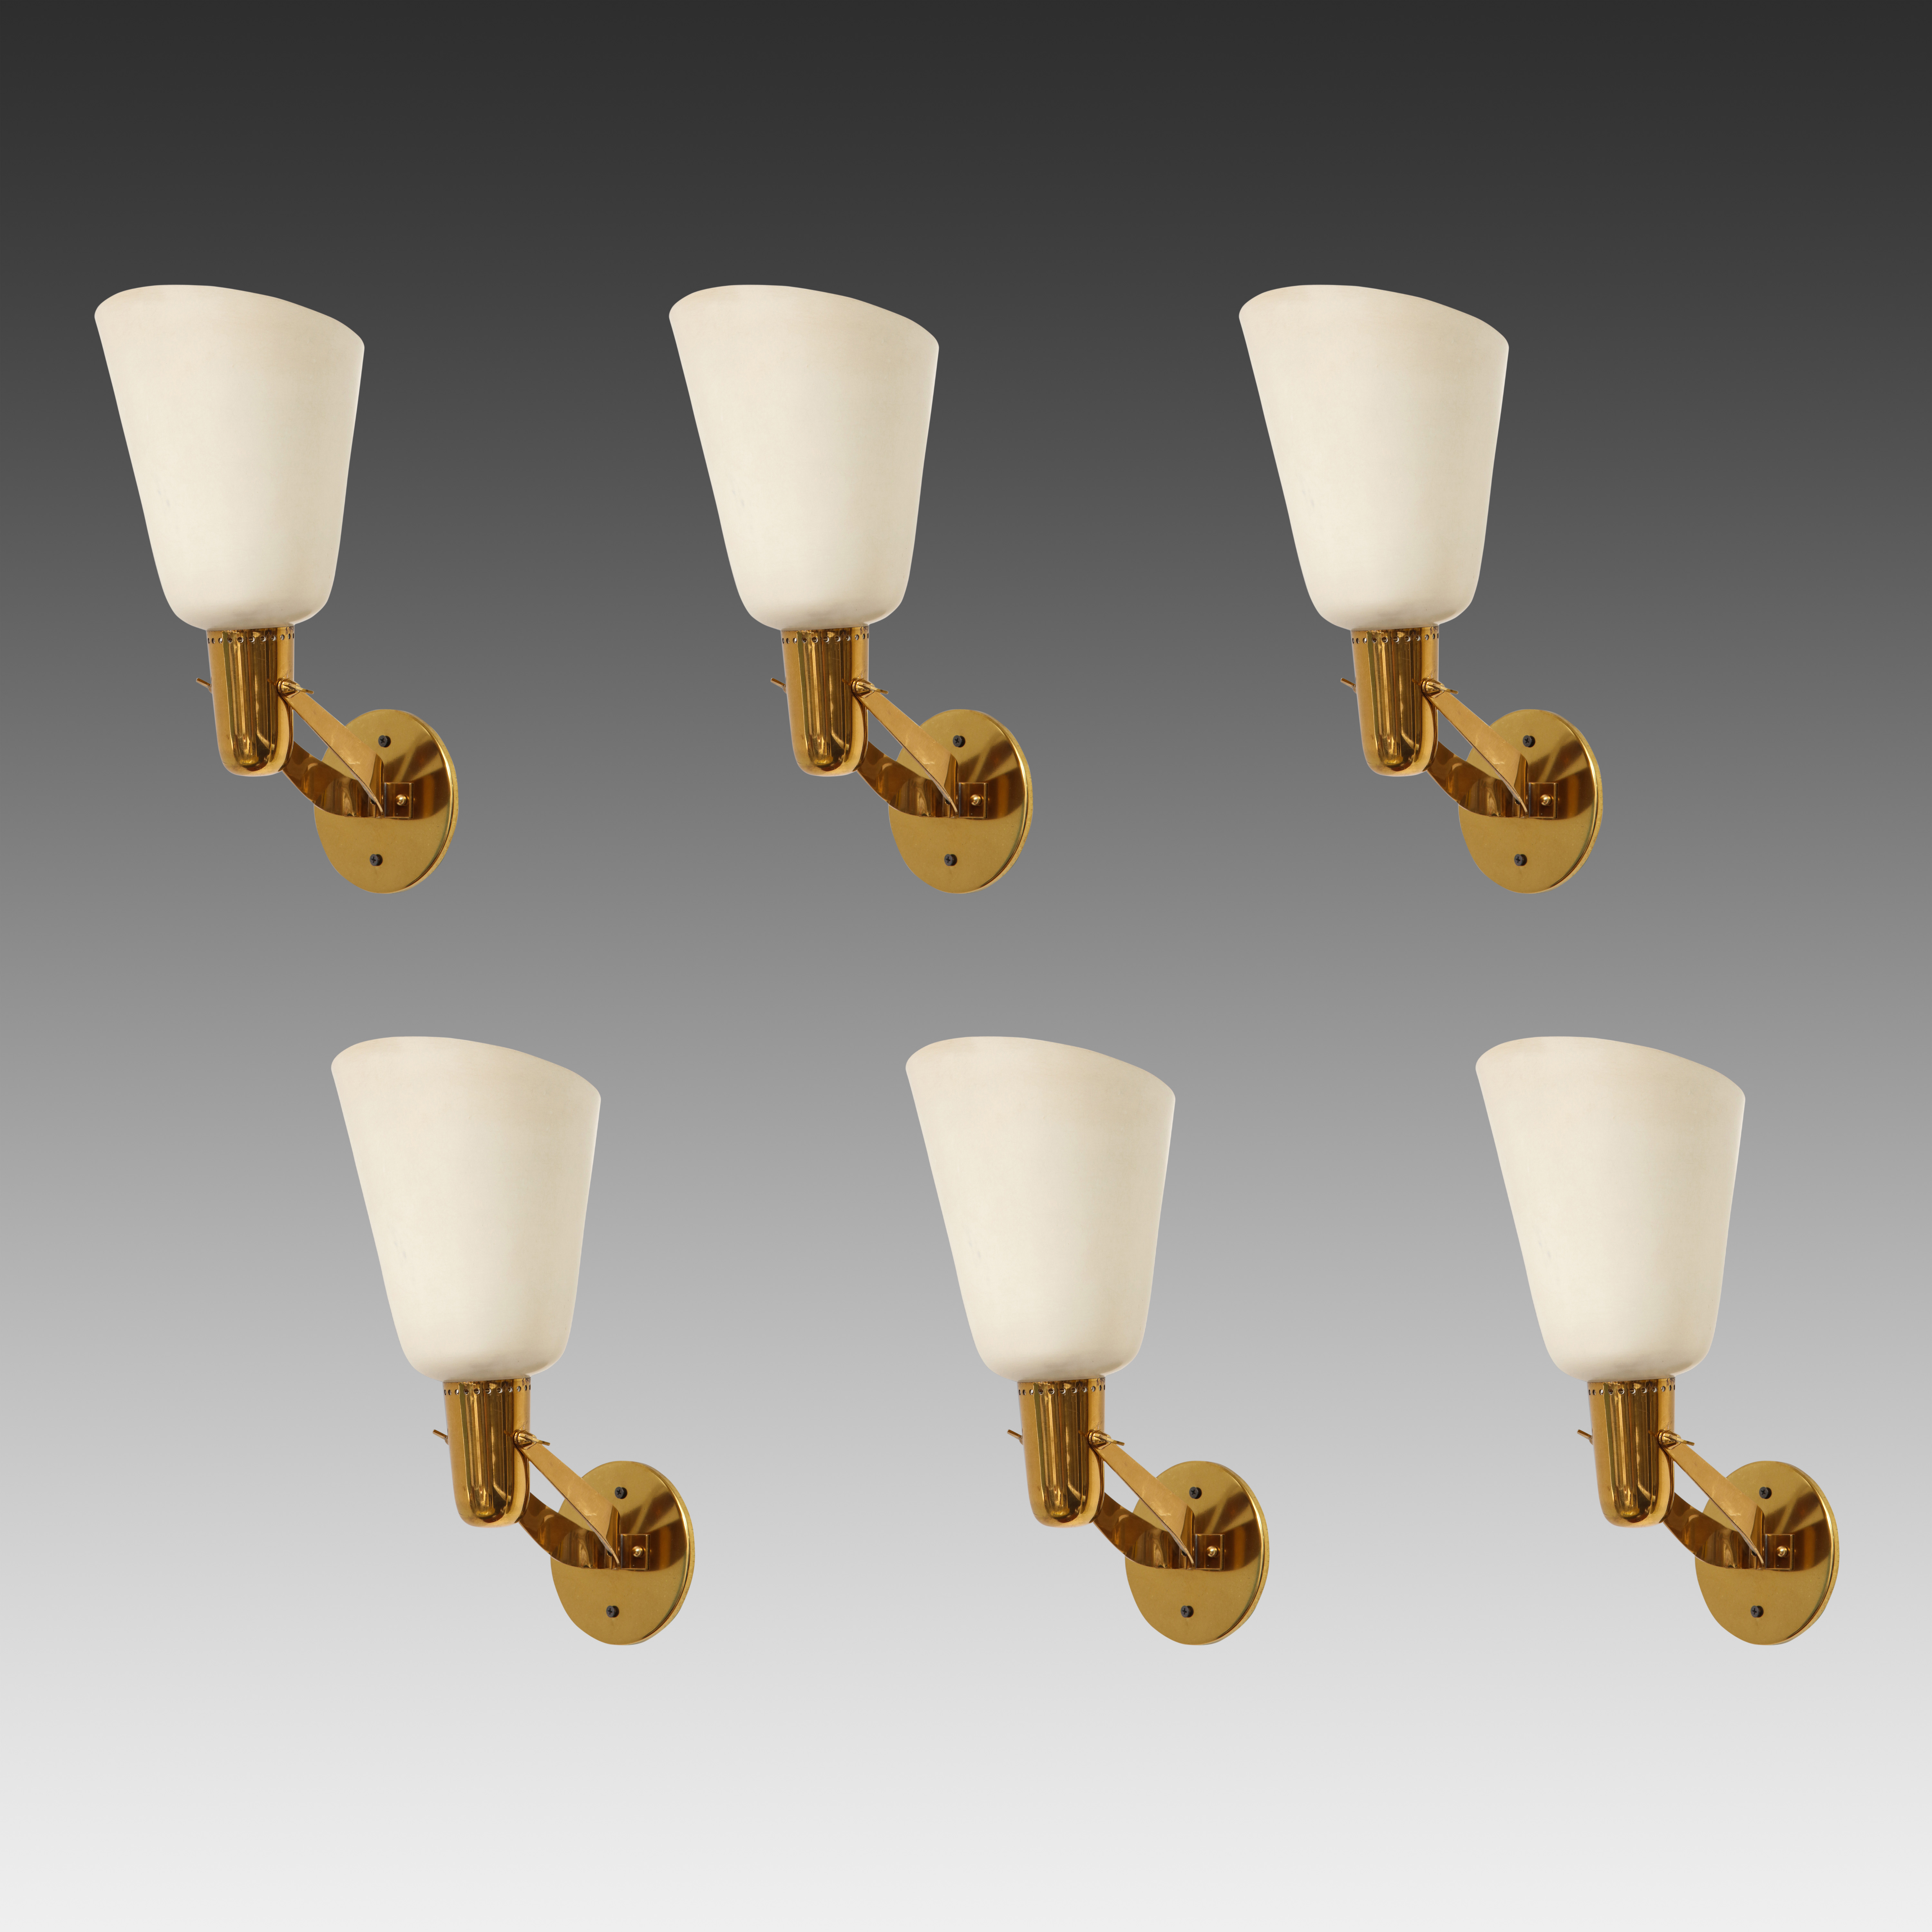 Rare Set of Six Sconces Model 121 by Gino Sarfatti for Arteluce | soyun k.